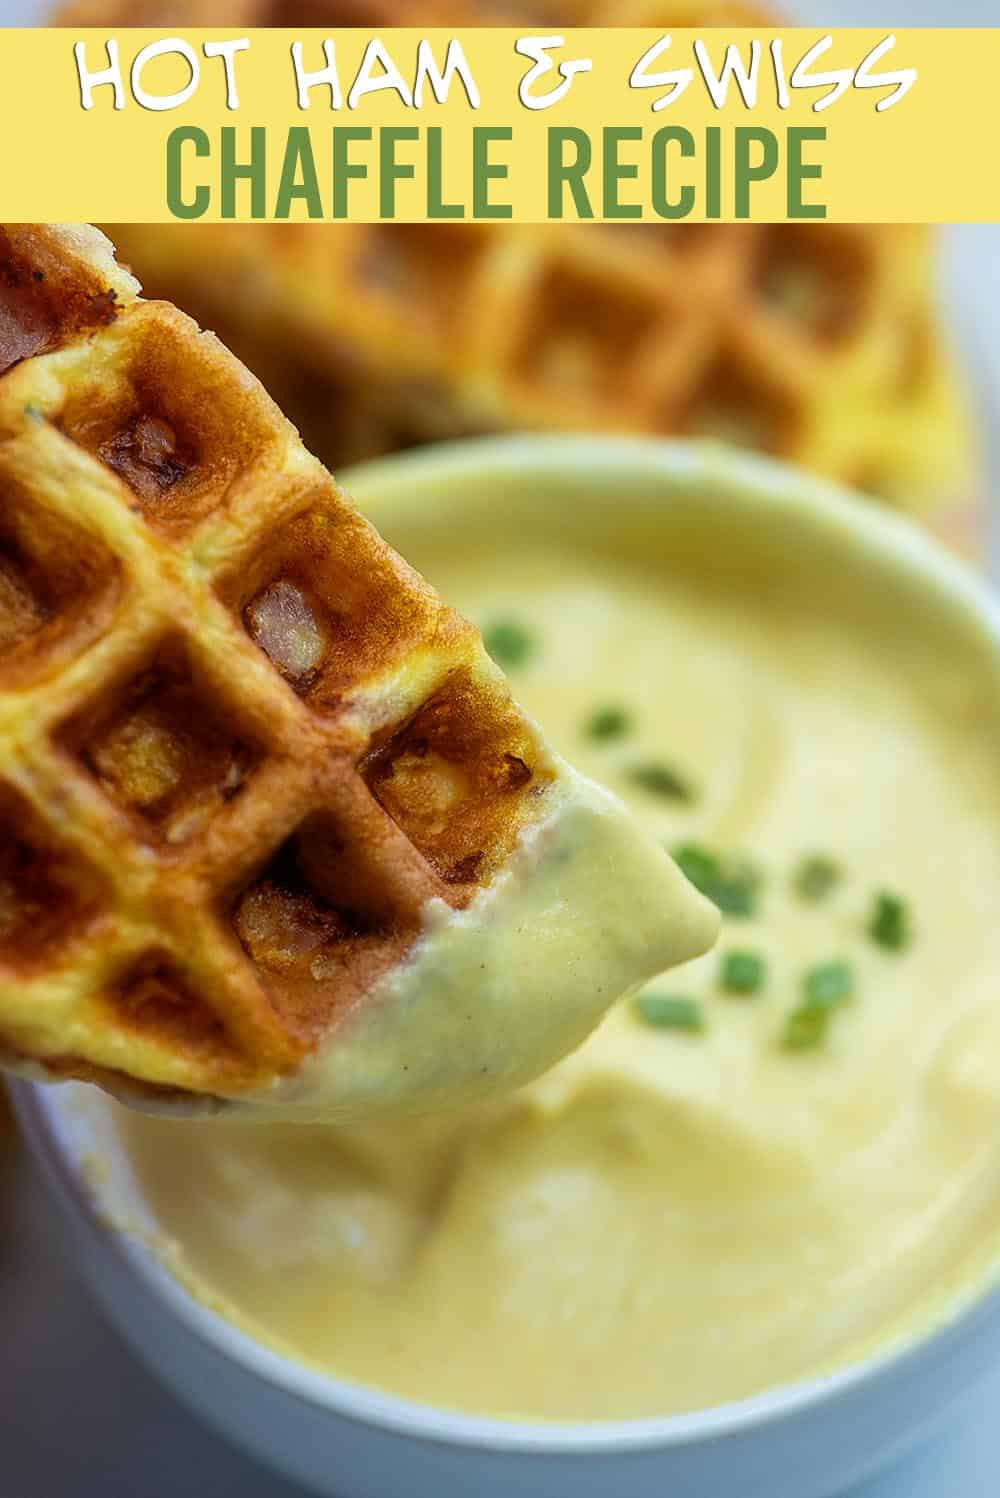 A close up of a chaffle being dipped into a cheese sauce